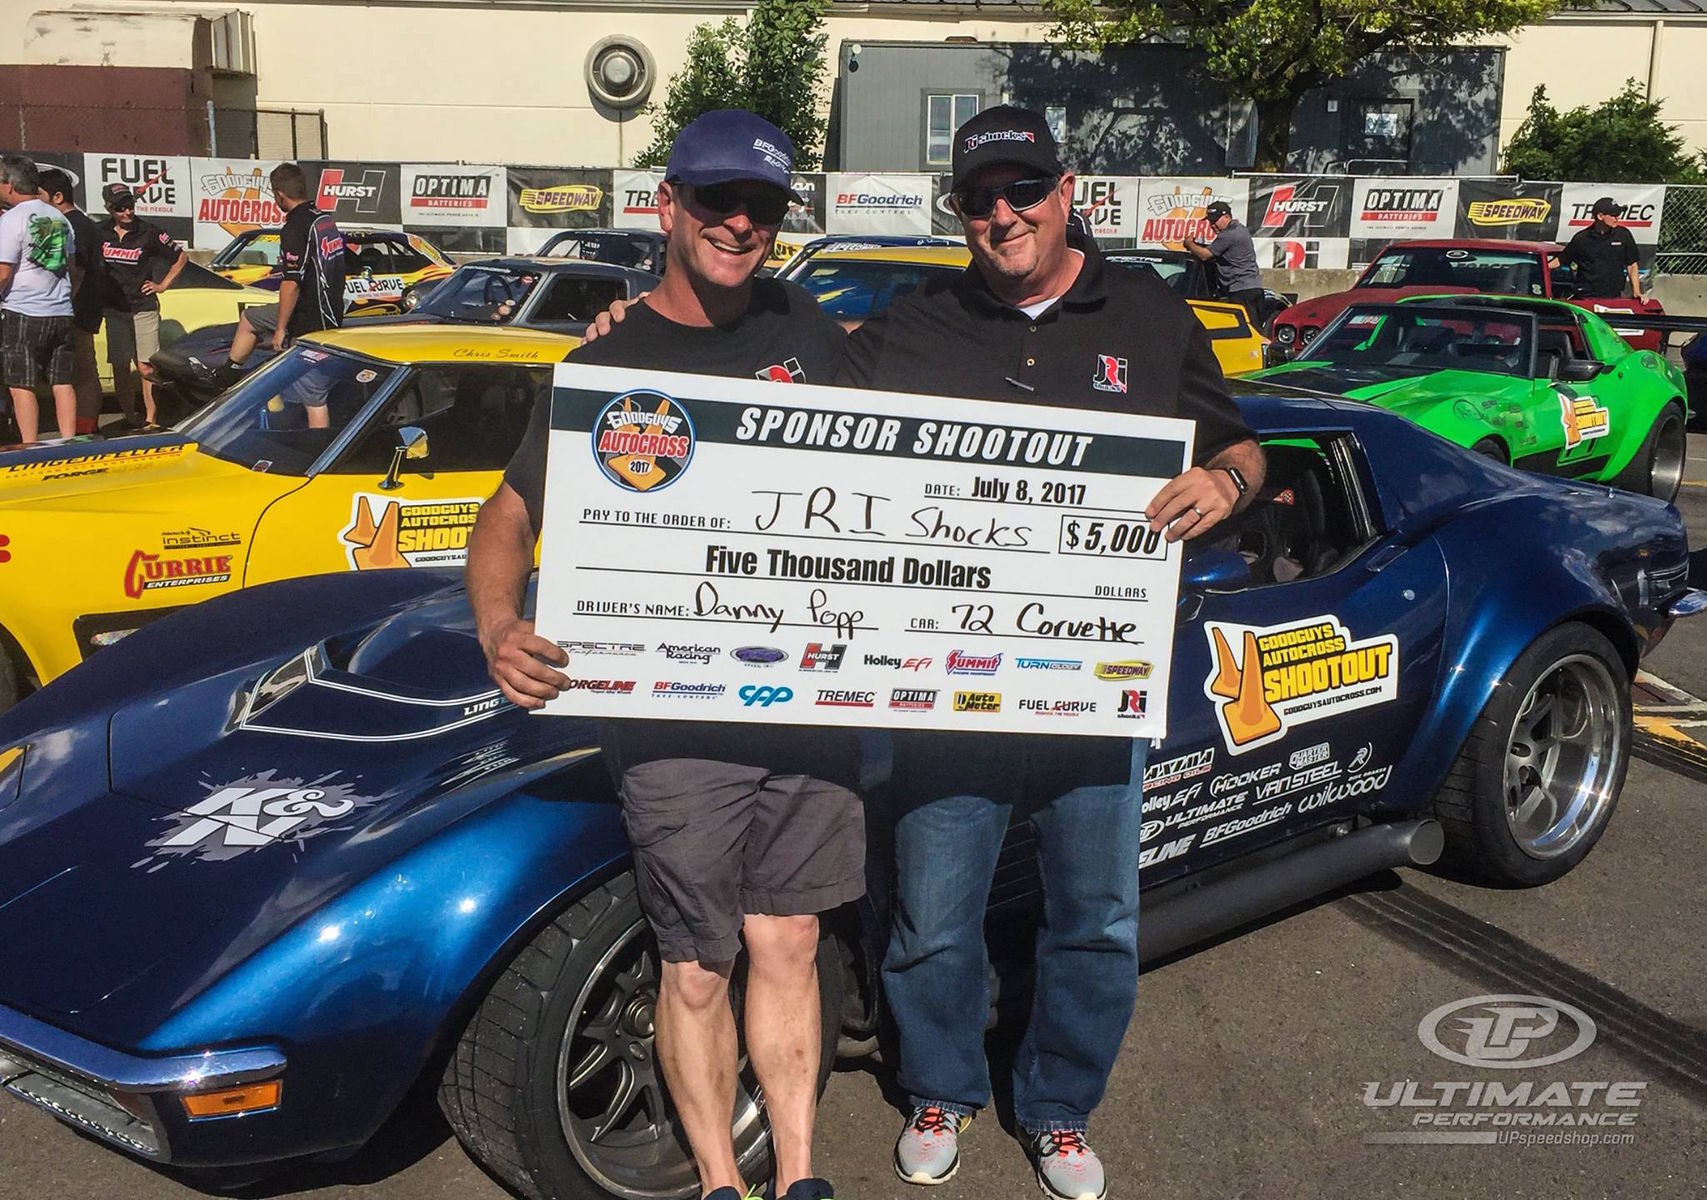 1972 Chevrolet Corvette Stingray | Danny Popp Wins 2017 Goodguys PPG Nationals Sponsor Shootout with '72 Corvette on Forgeline GA3R Wheels